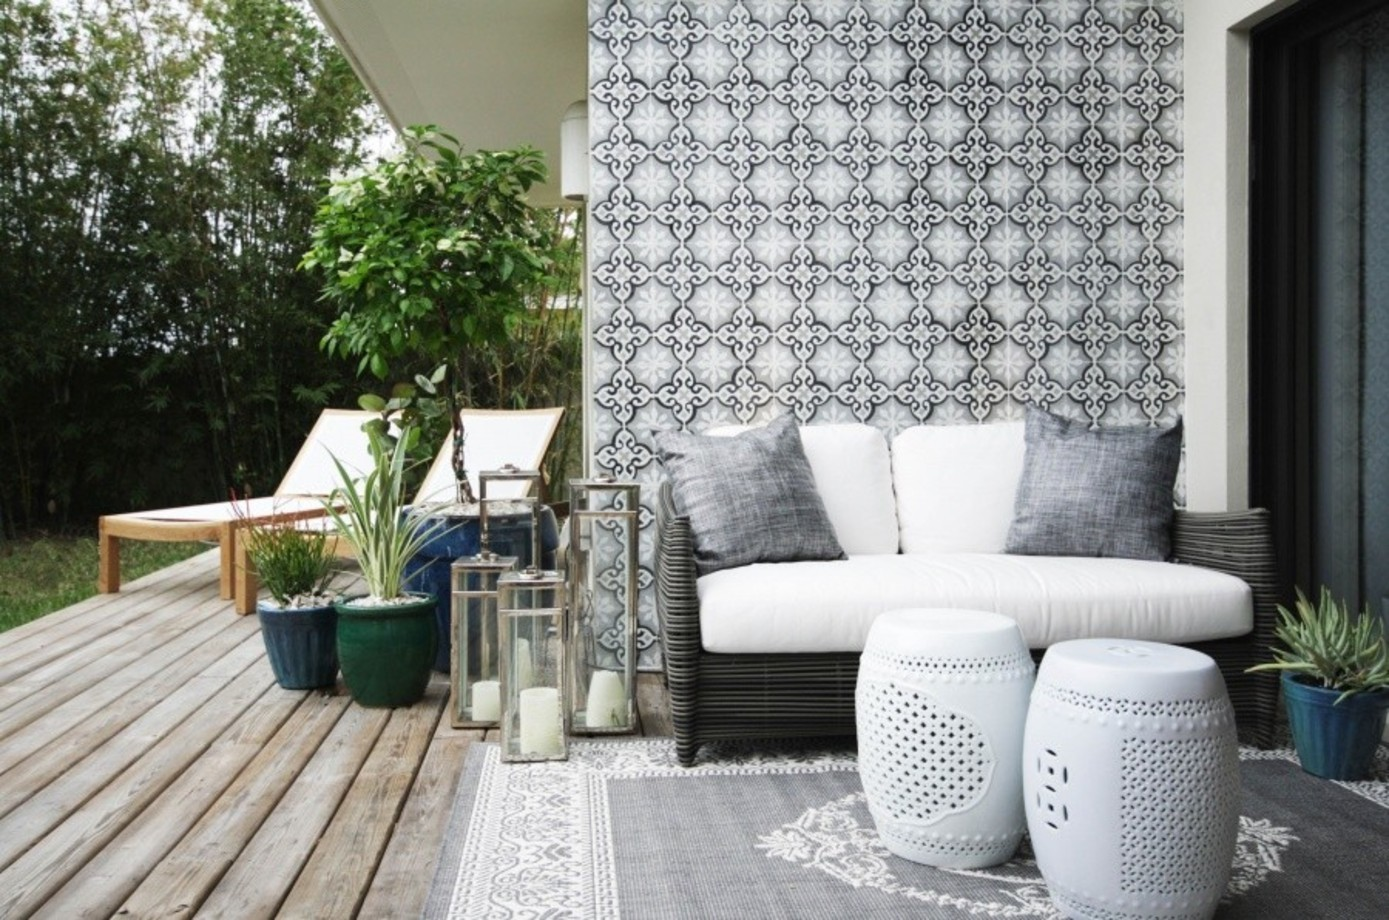 Get the Look: A Stylish Indoor/Outdoor Patio - Decorating ... on Backyard Garden Decor id=25397